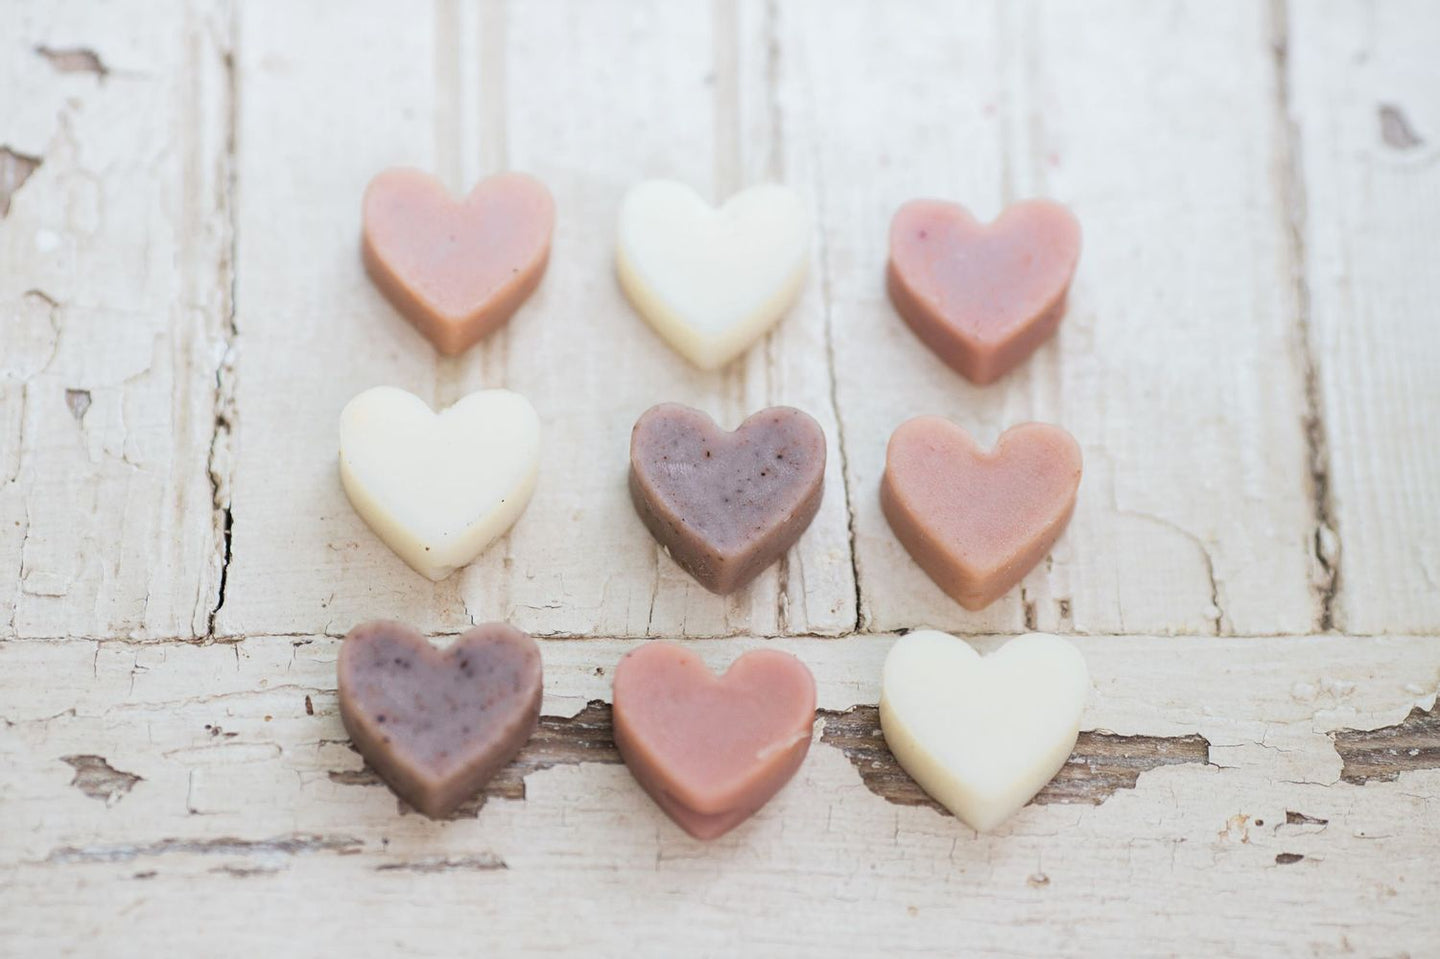 Bulk Mini Heart Soaps - All Natural and Handmade